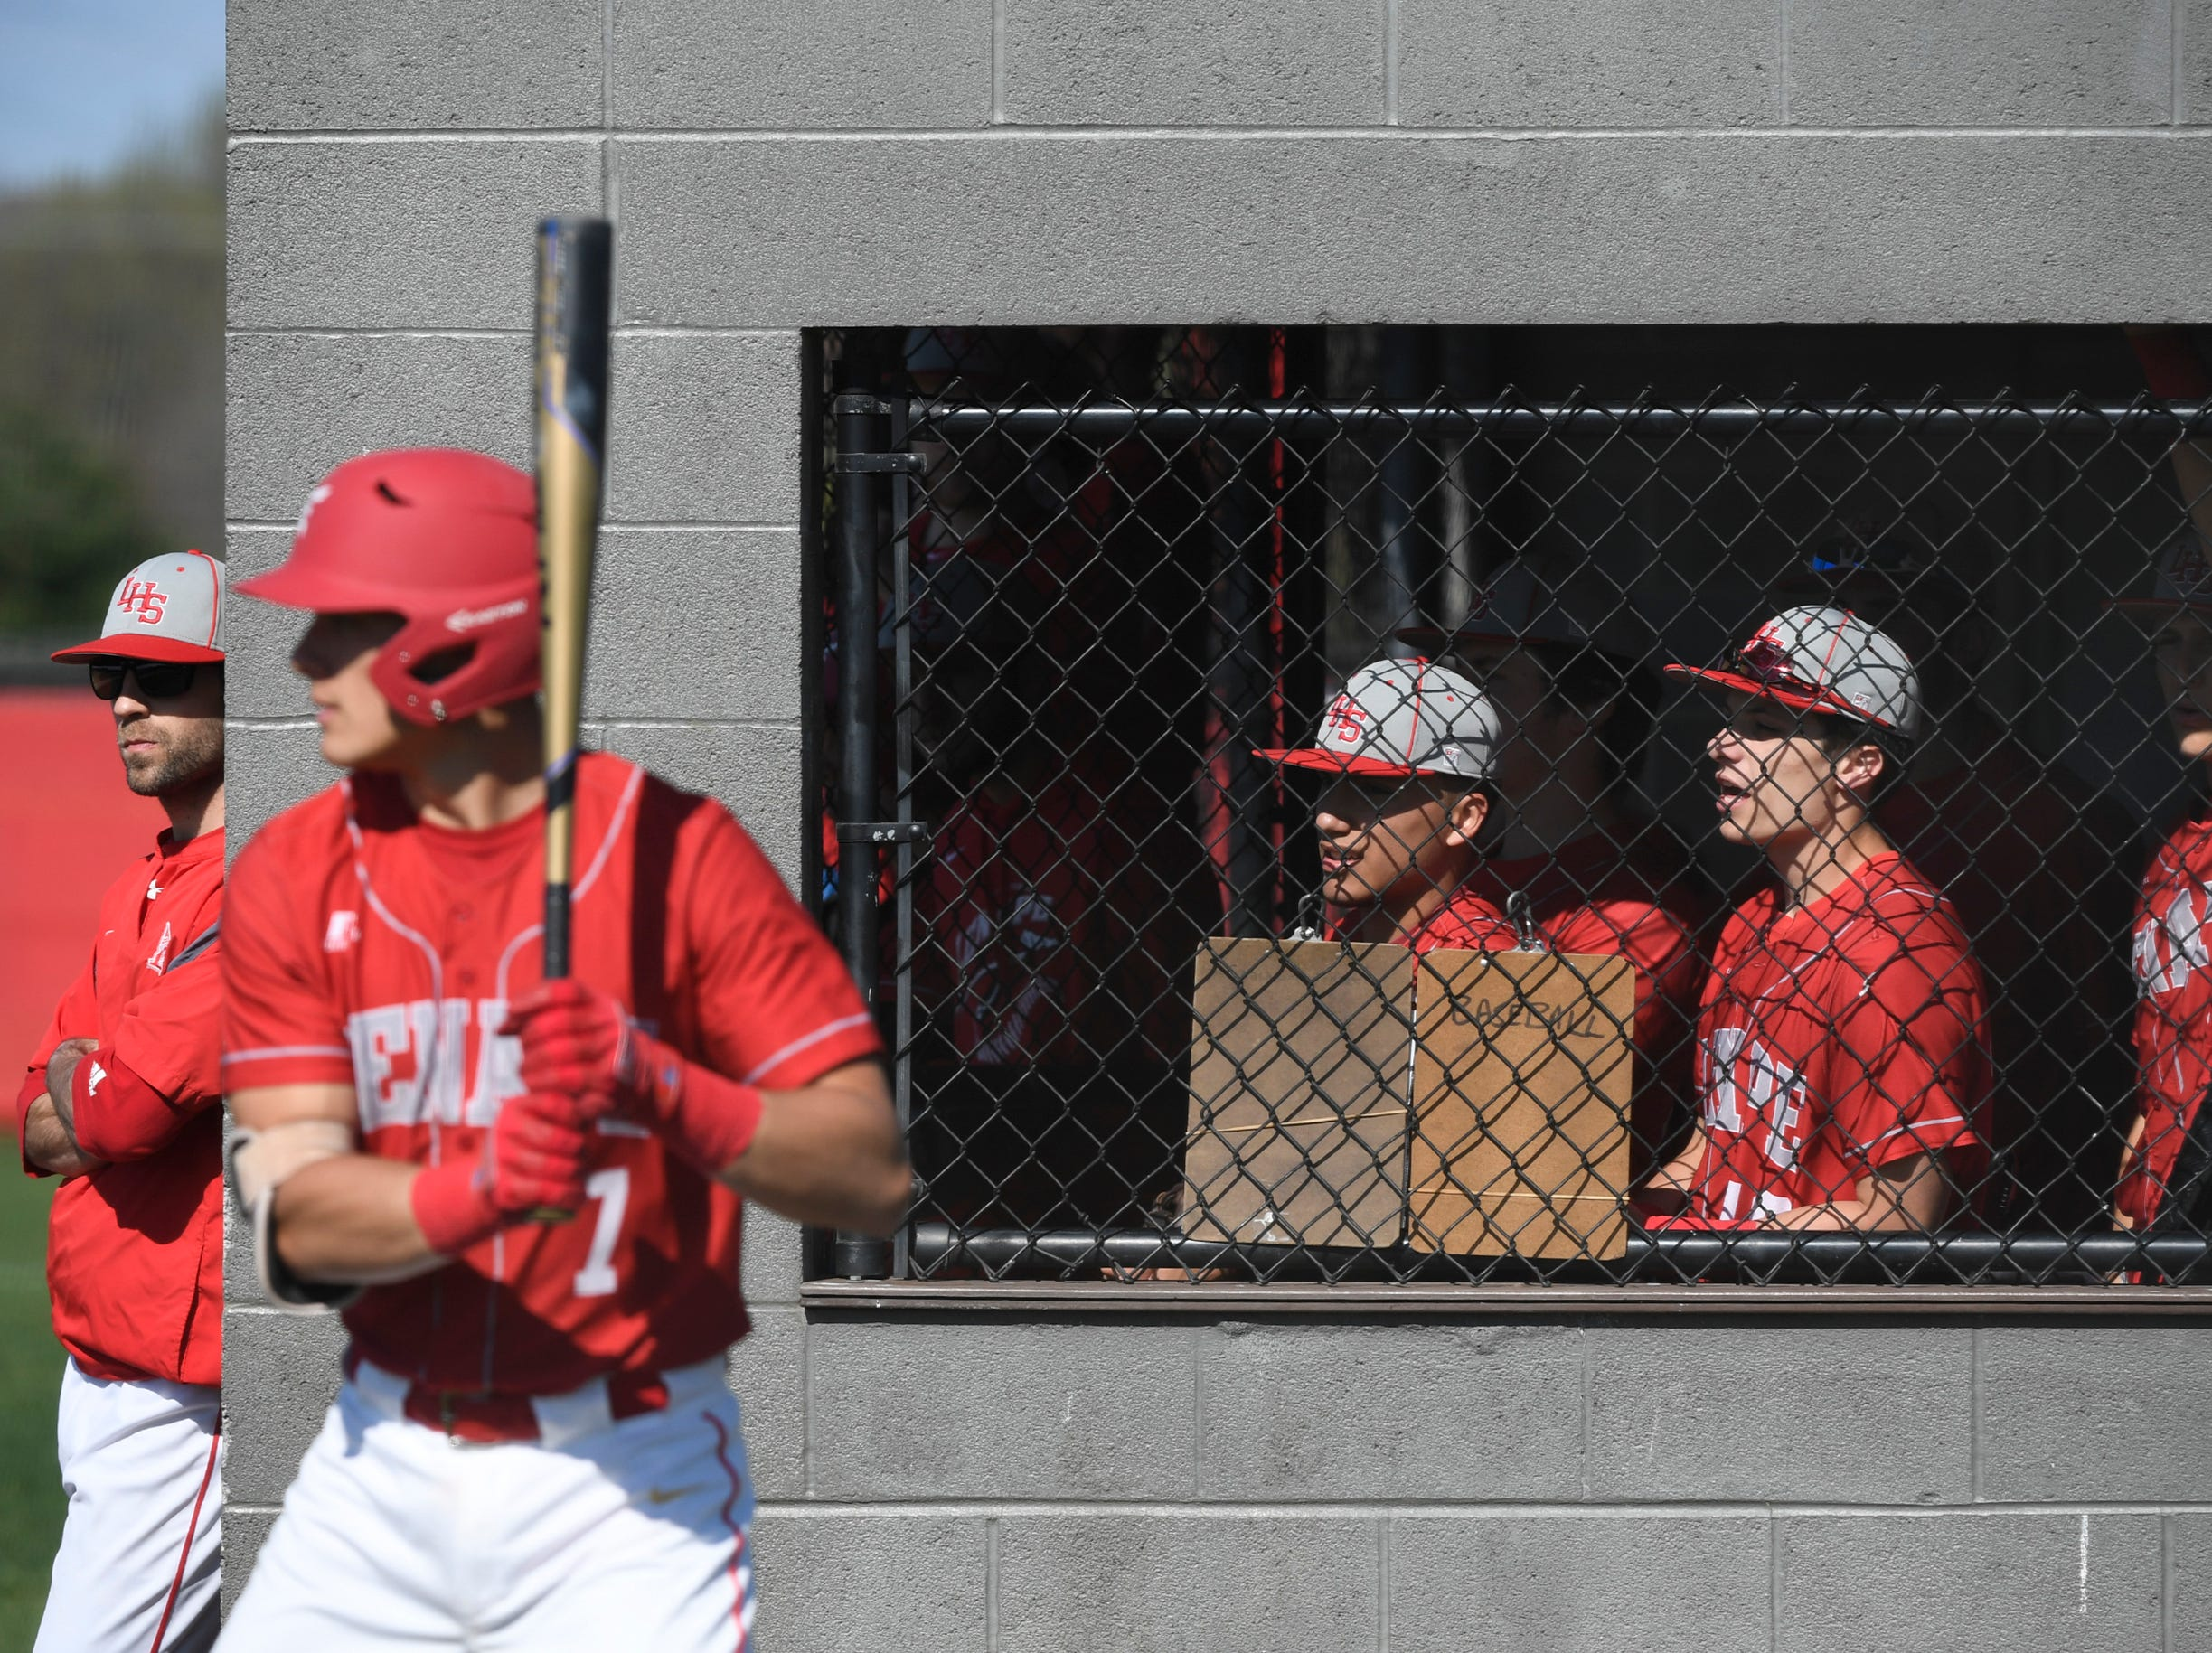 The Lenape dugout cheers on their team during a game against Bishop Eustace Tuesday, April 16, 2019 in Medford, N.J. Bishop Eustace won 5-3 and head coach Sam Tropiano earned his record-setting 673rd win.